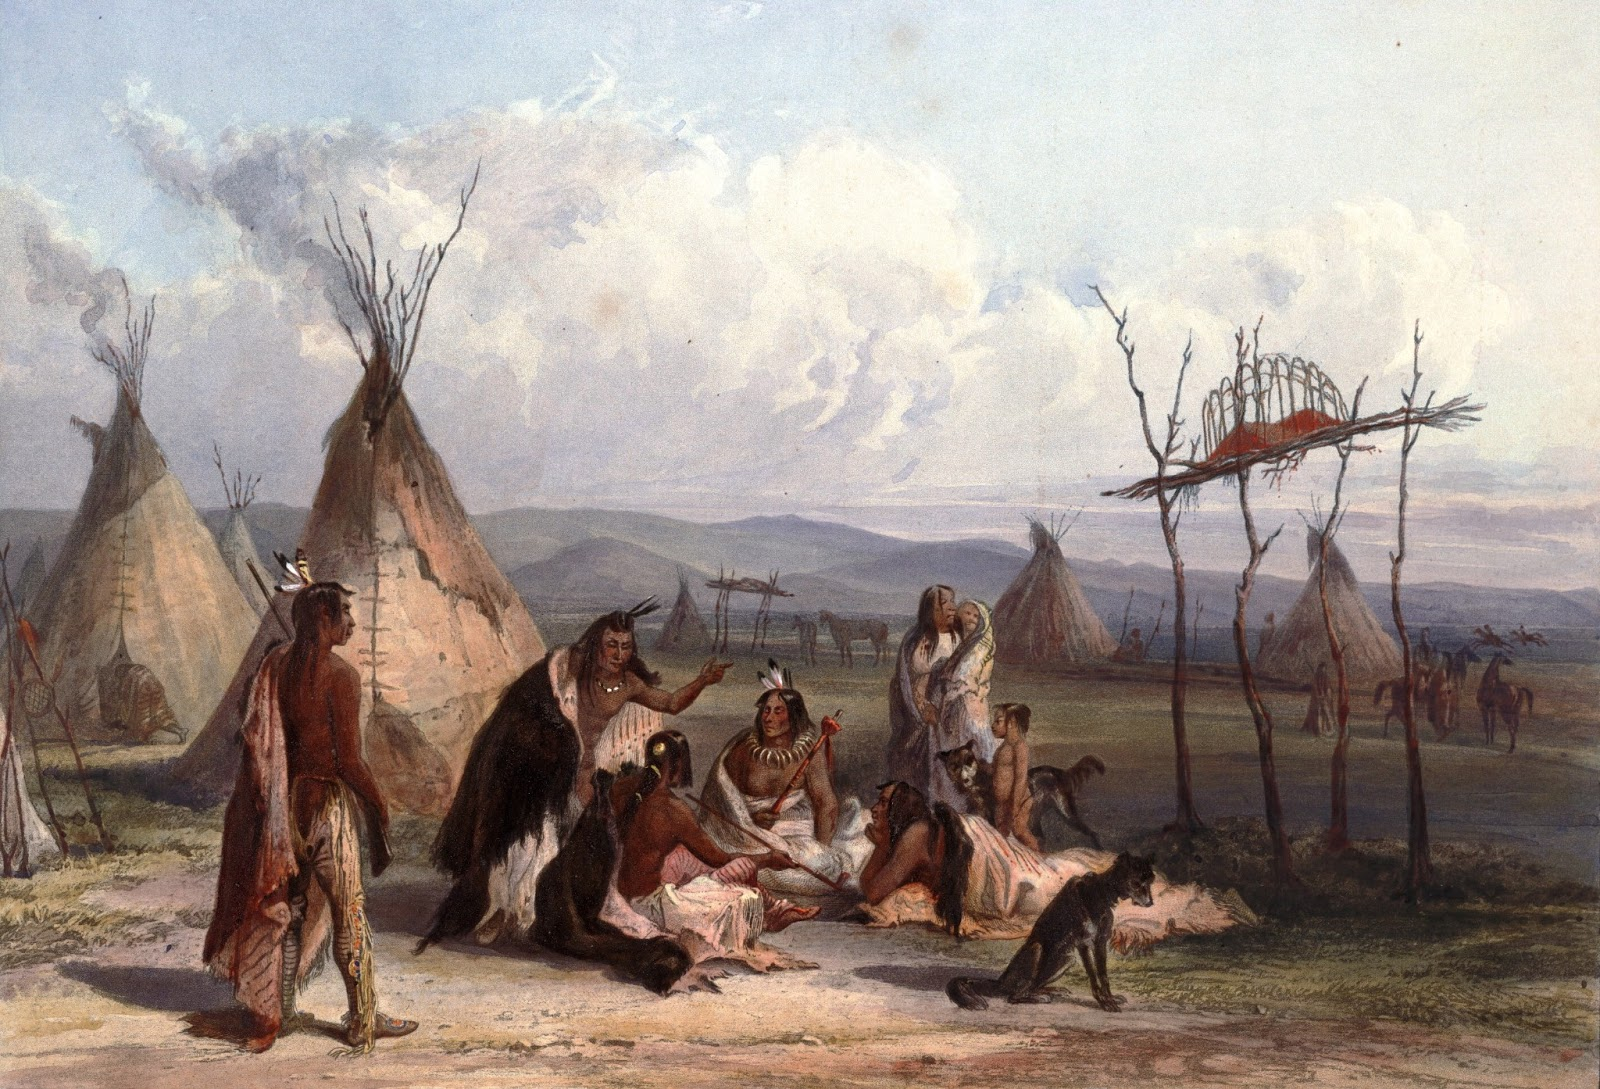 Sioux dead are usually wrapped up in buffalo skins or blankets and